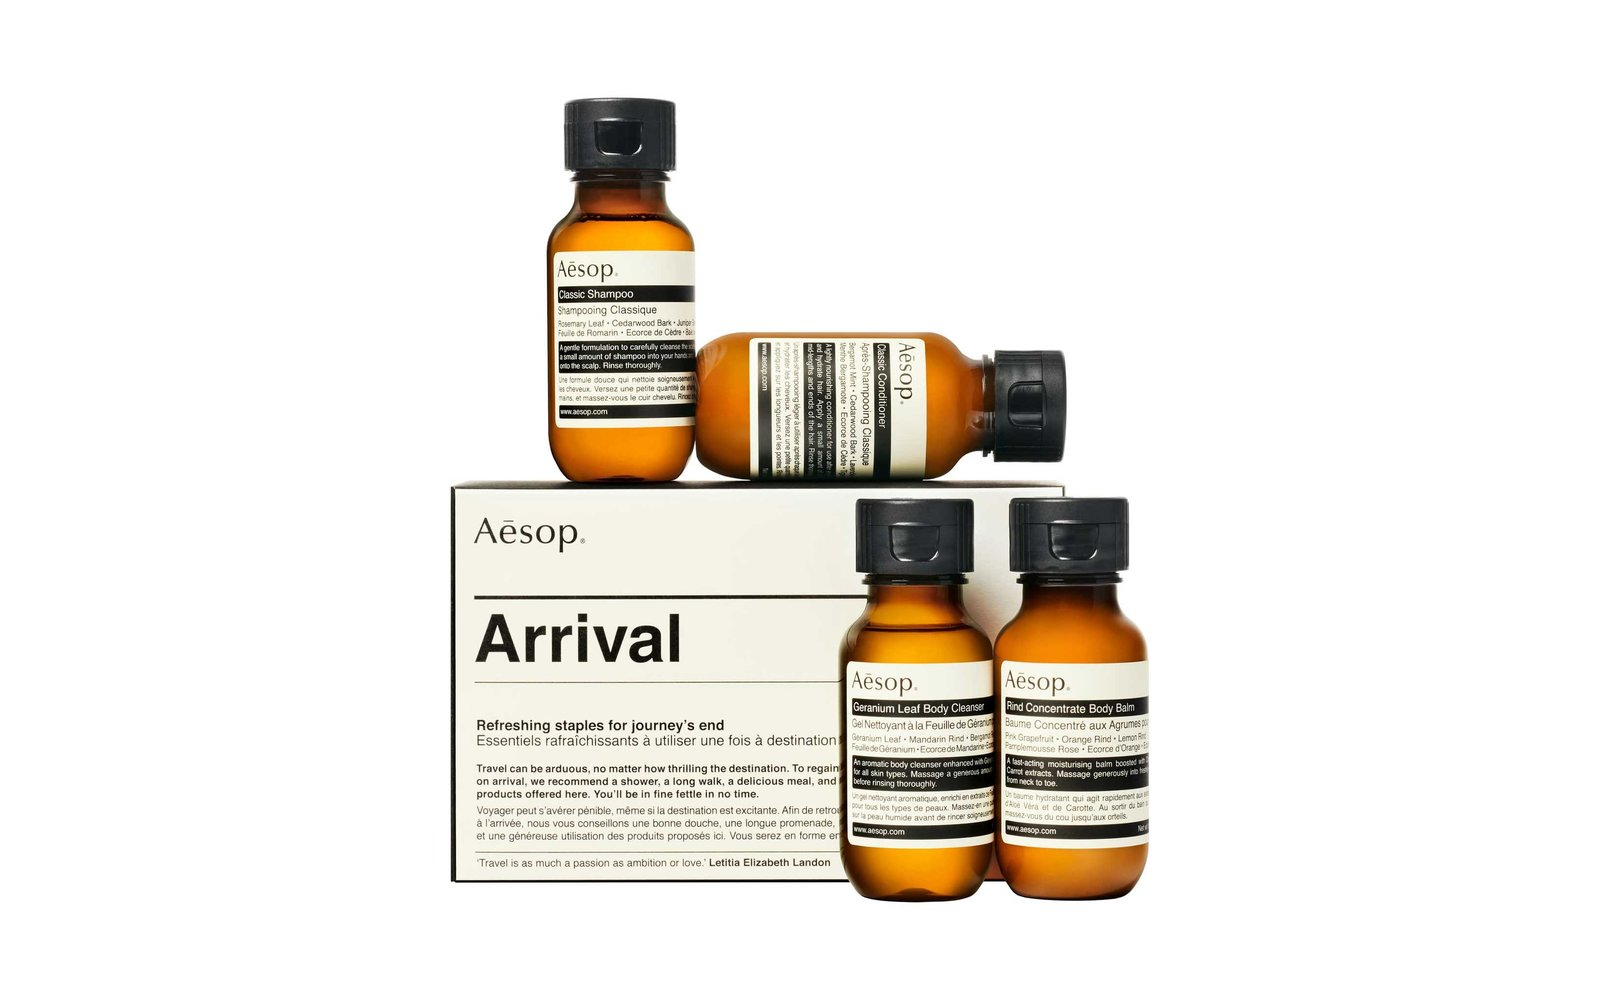 travel toiletry kit aesop